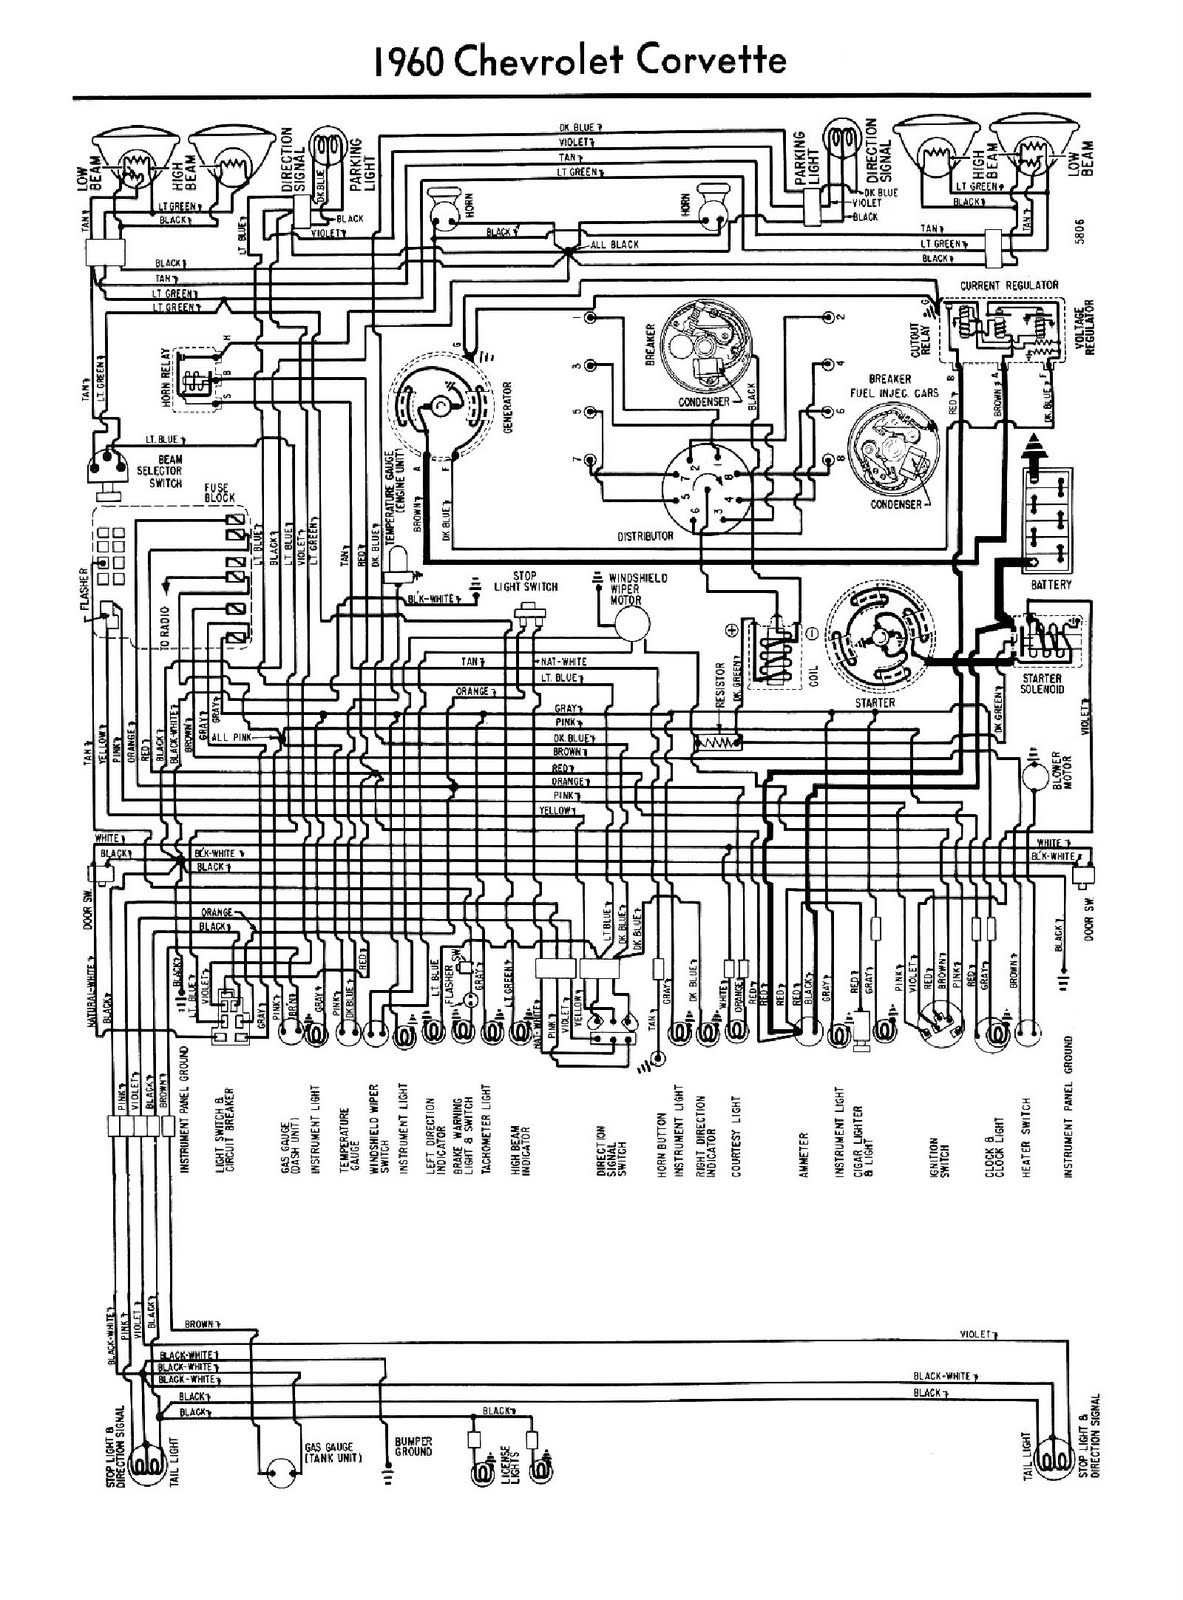 1975 Corvette Fuse Box Schematic Diagrams 1981 Diagram Ignition Wiring Trusted